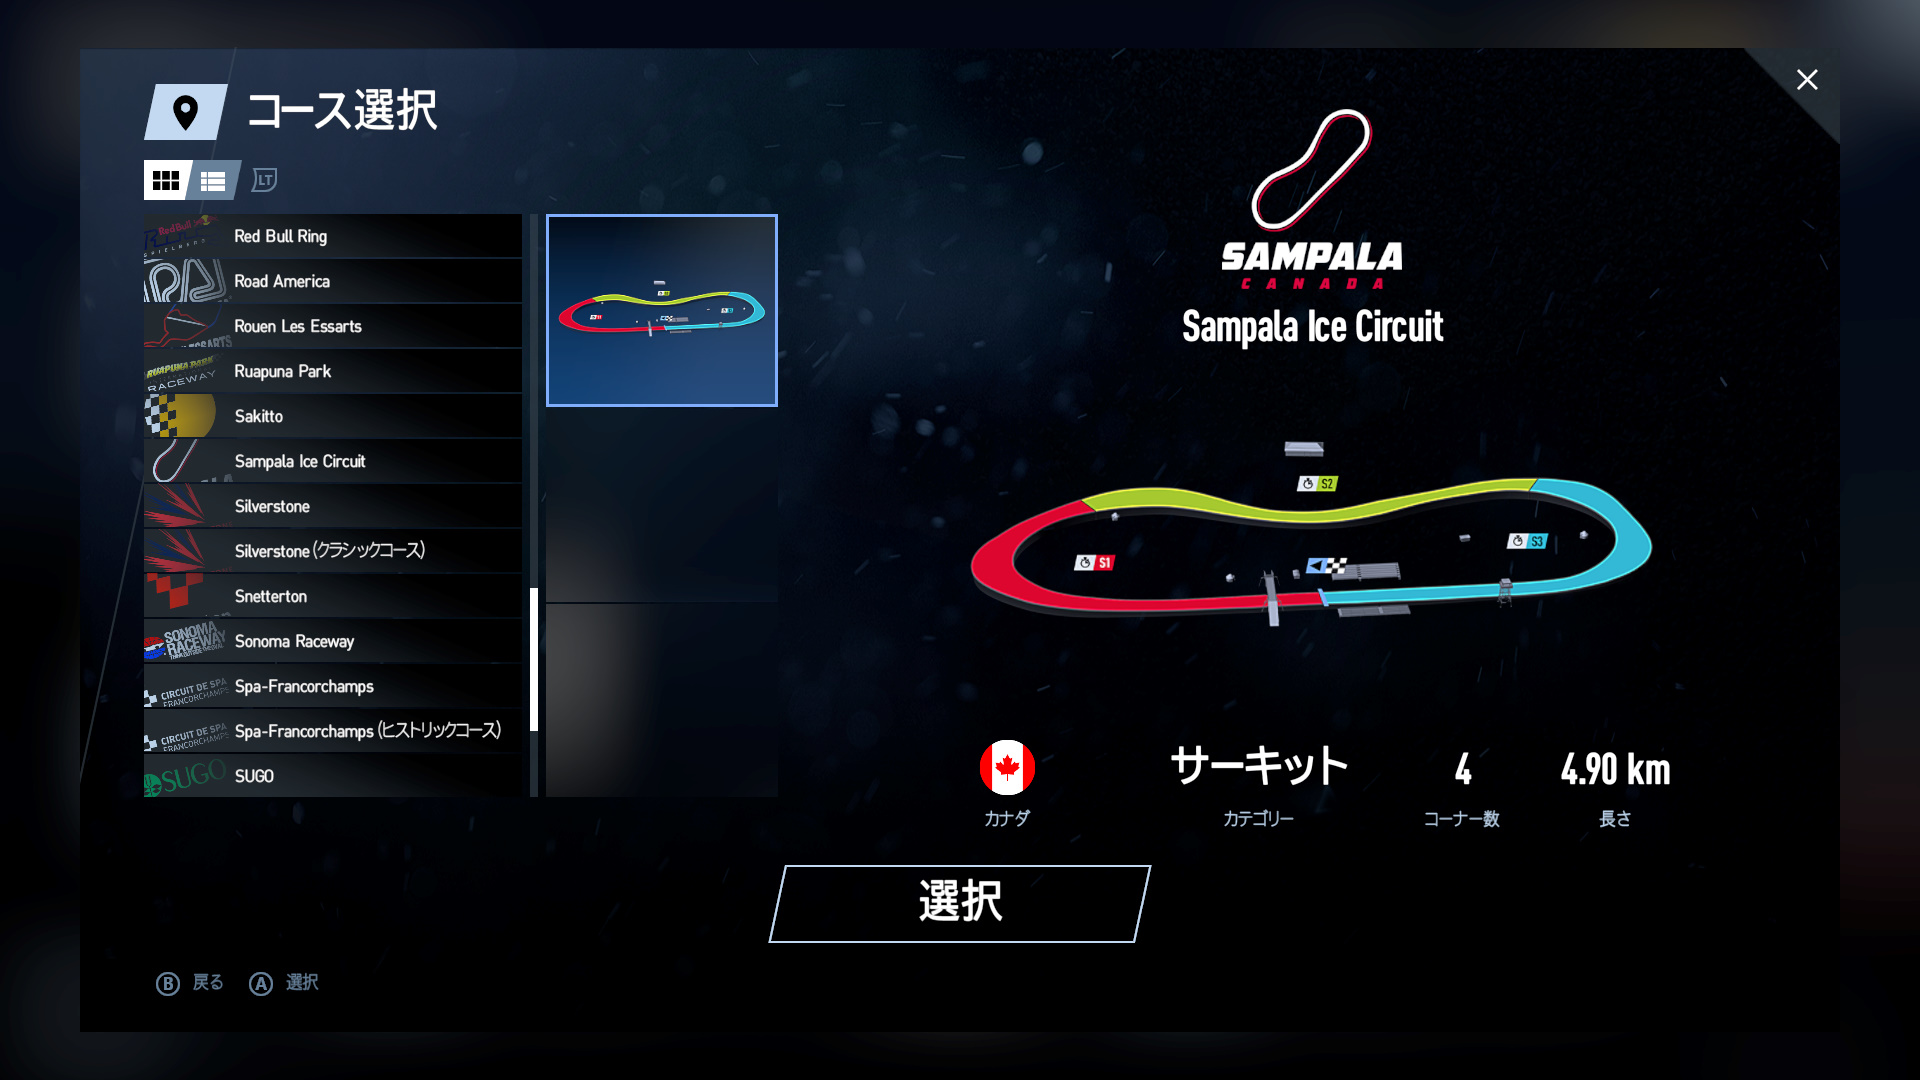 Sampala Ice Circuit1